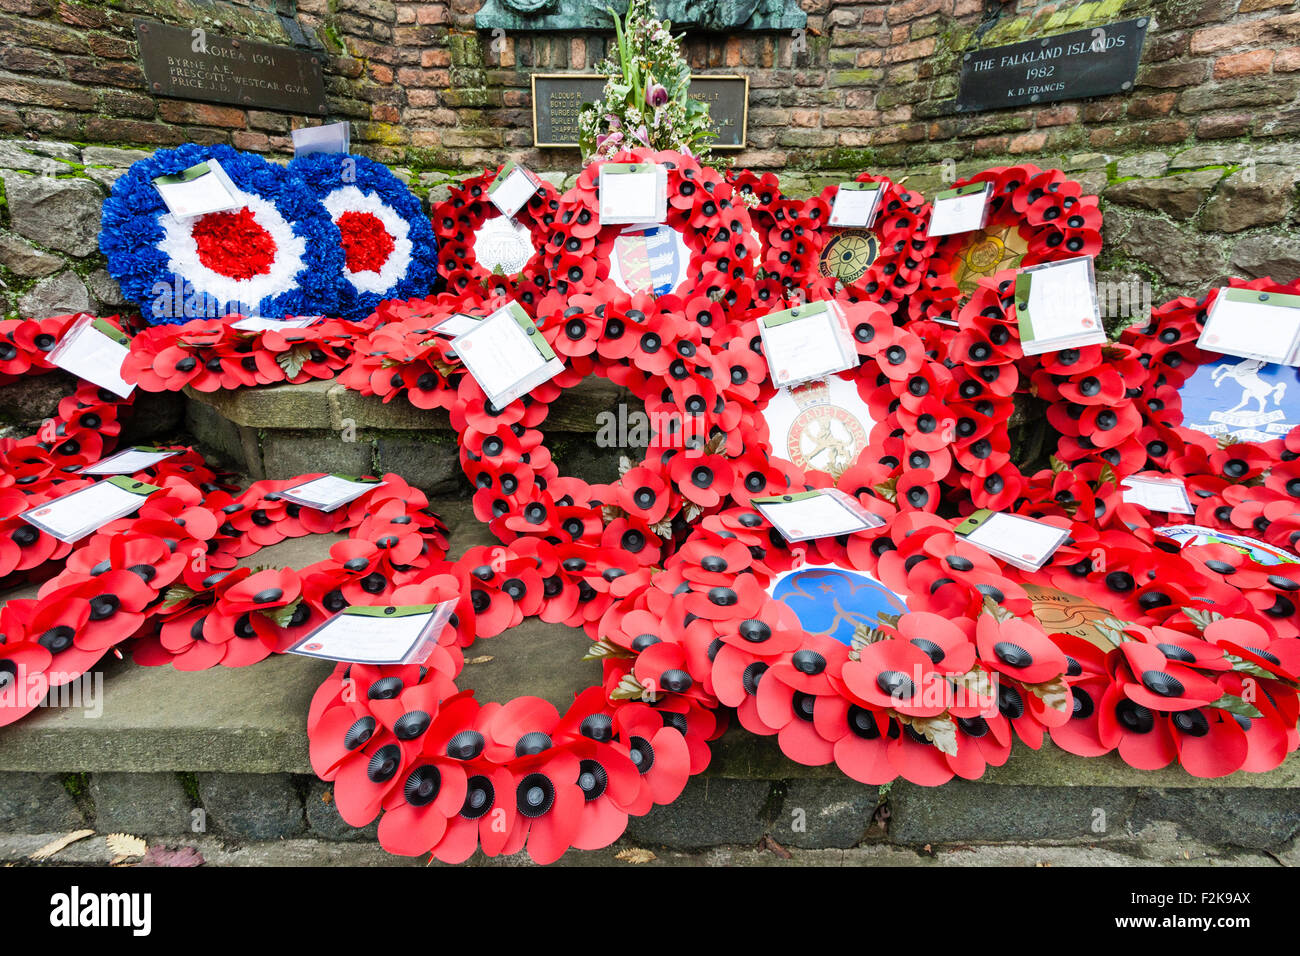 Remembrance Sunday in Britain in November to commemorate the dead of both world wars and other conflicts. Wreaths - Stock Image